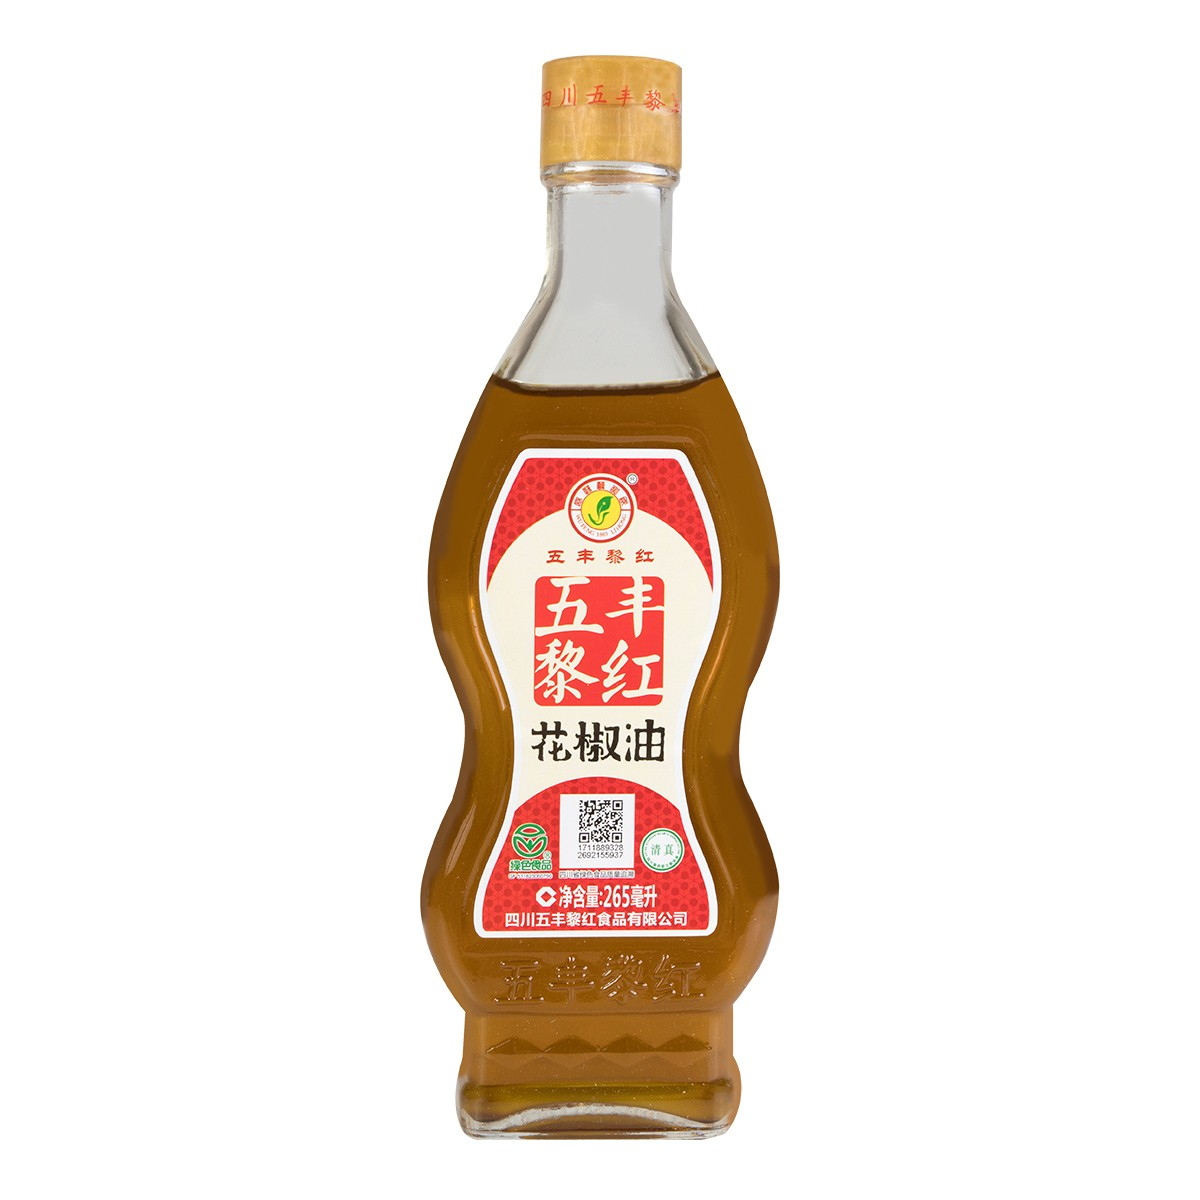 WUFENGLIHONG Prickly Ash Oil 265ml